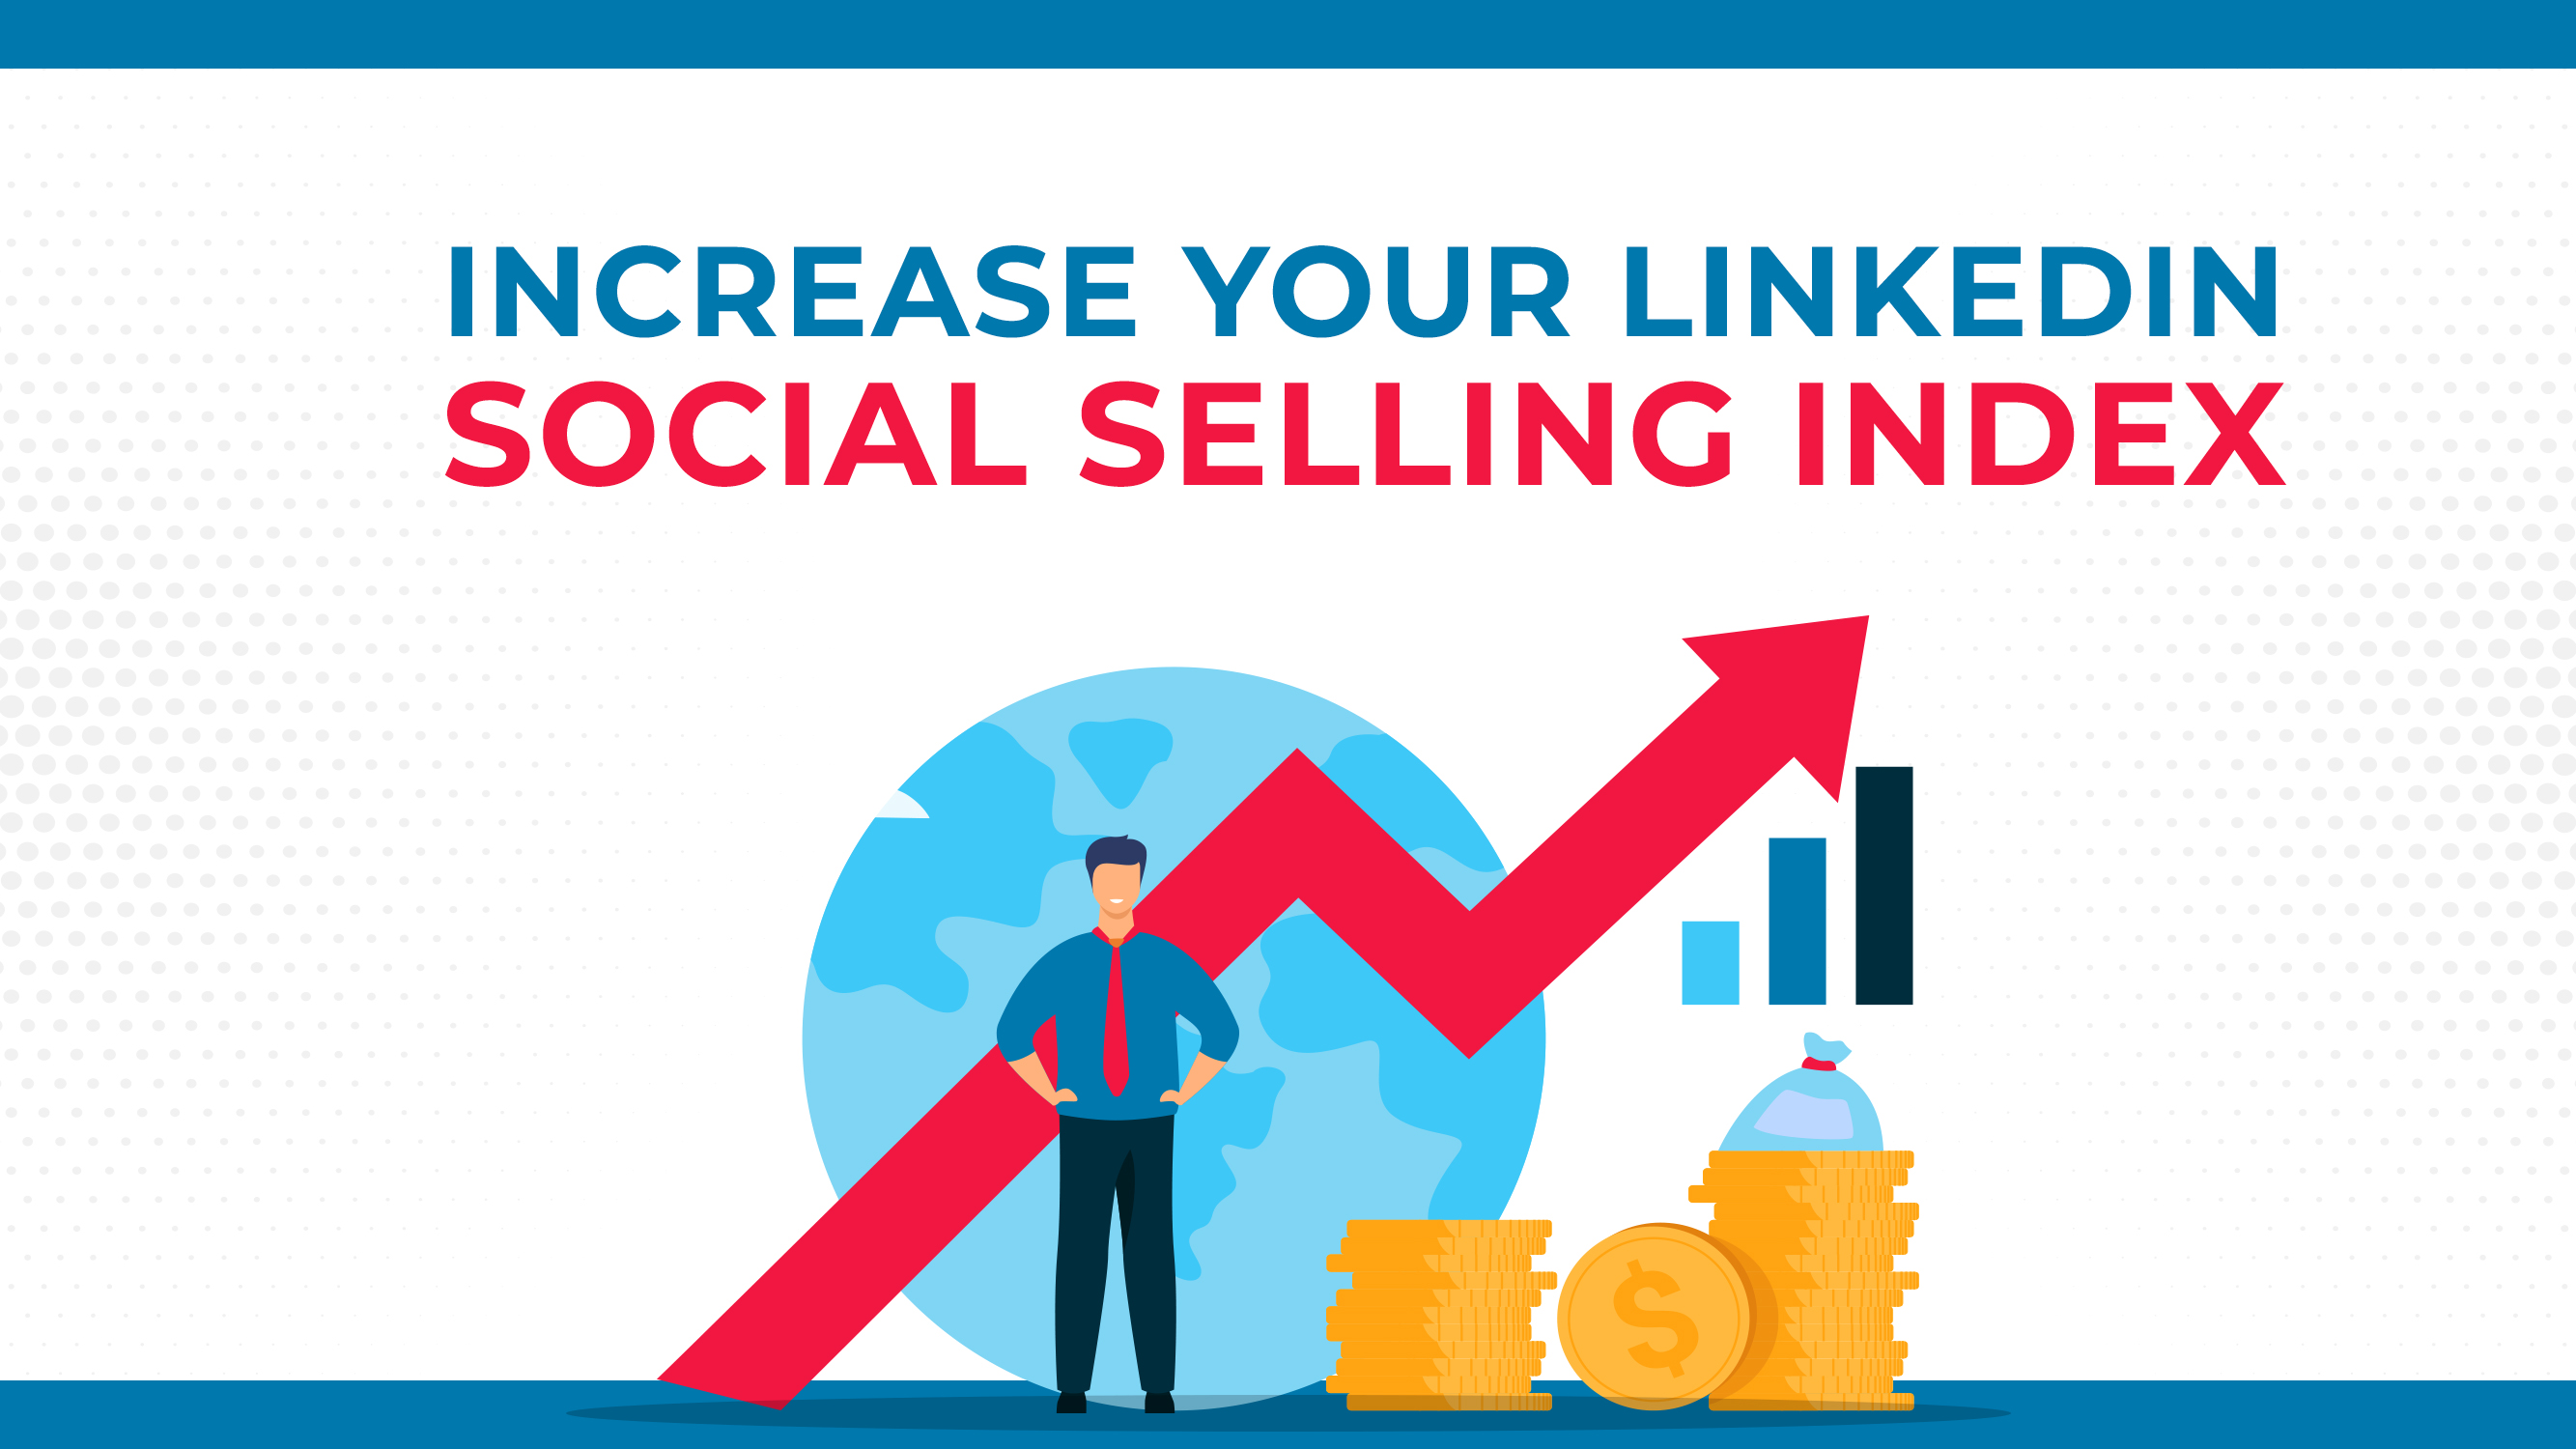 Increase Your LinkedIn Social Selling Index